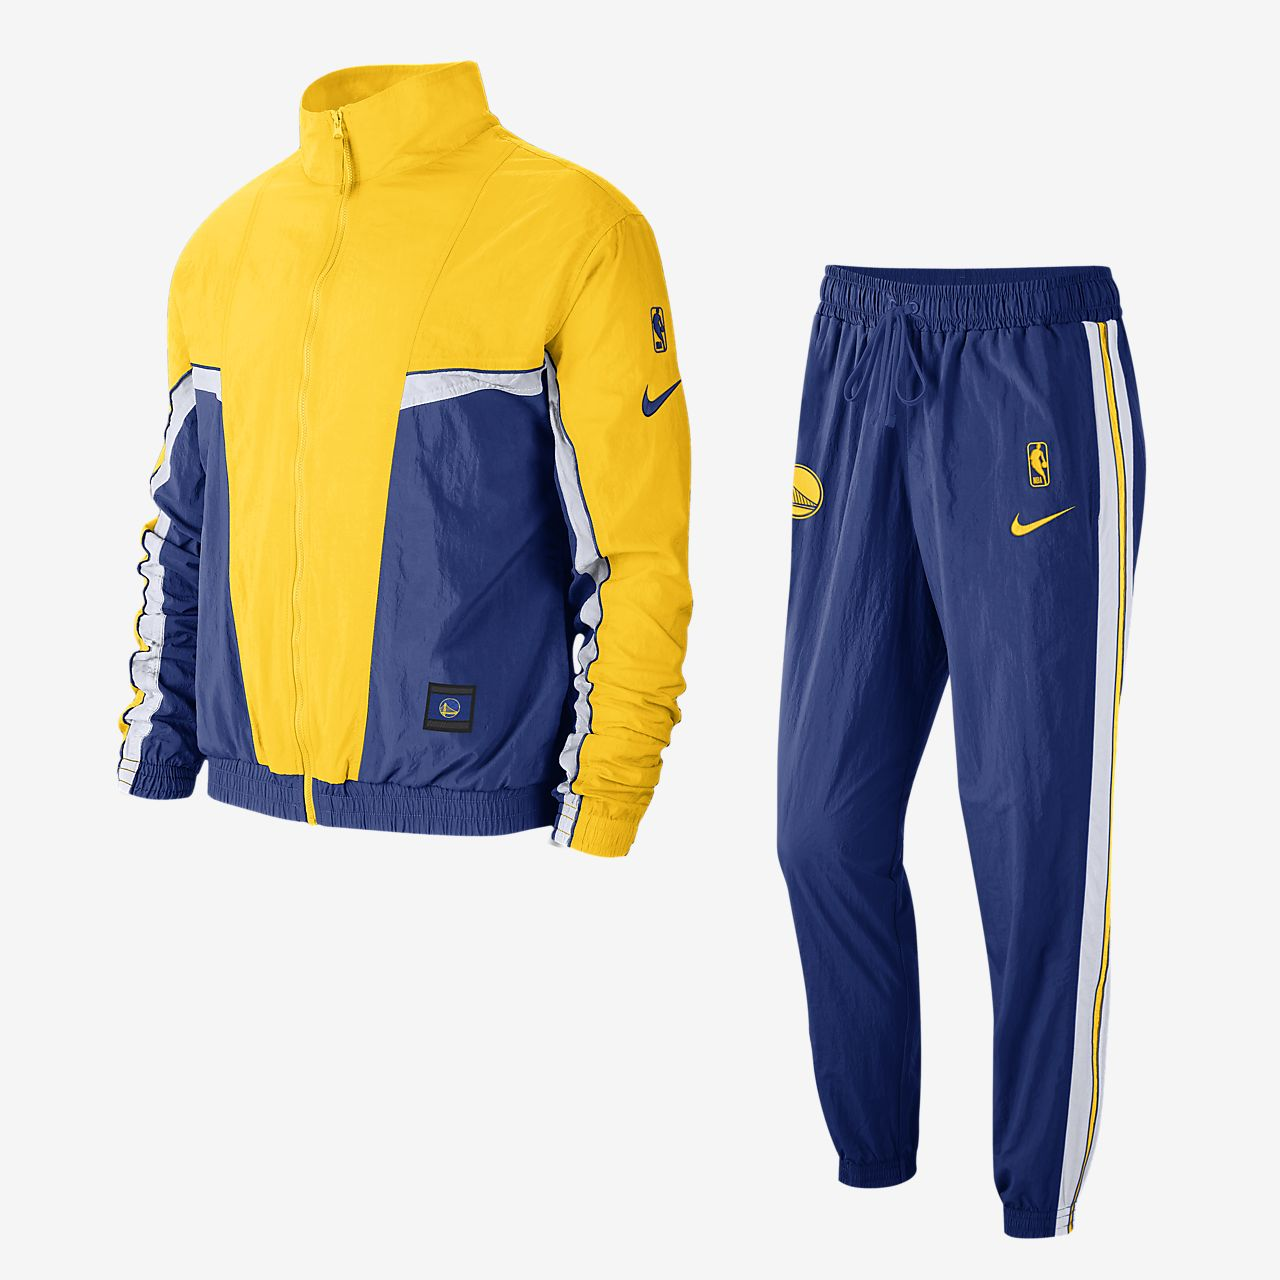 Survêtement Nike NBA Golden State Warriors Courtside pour Homme